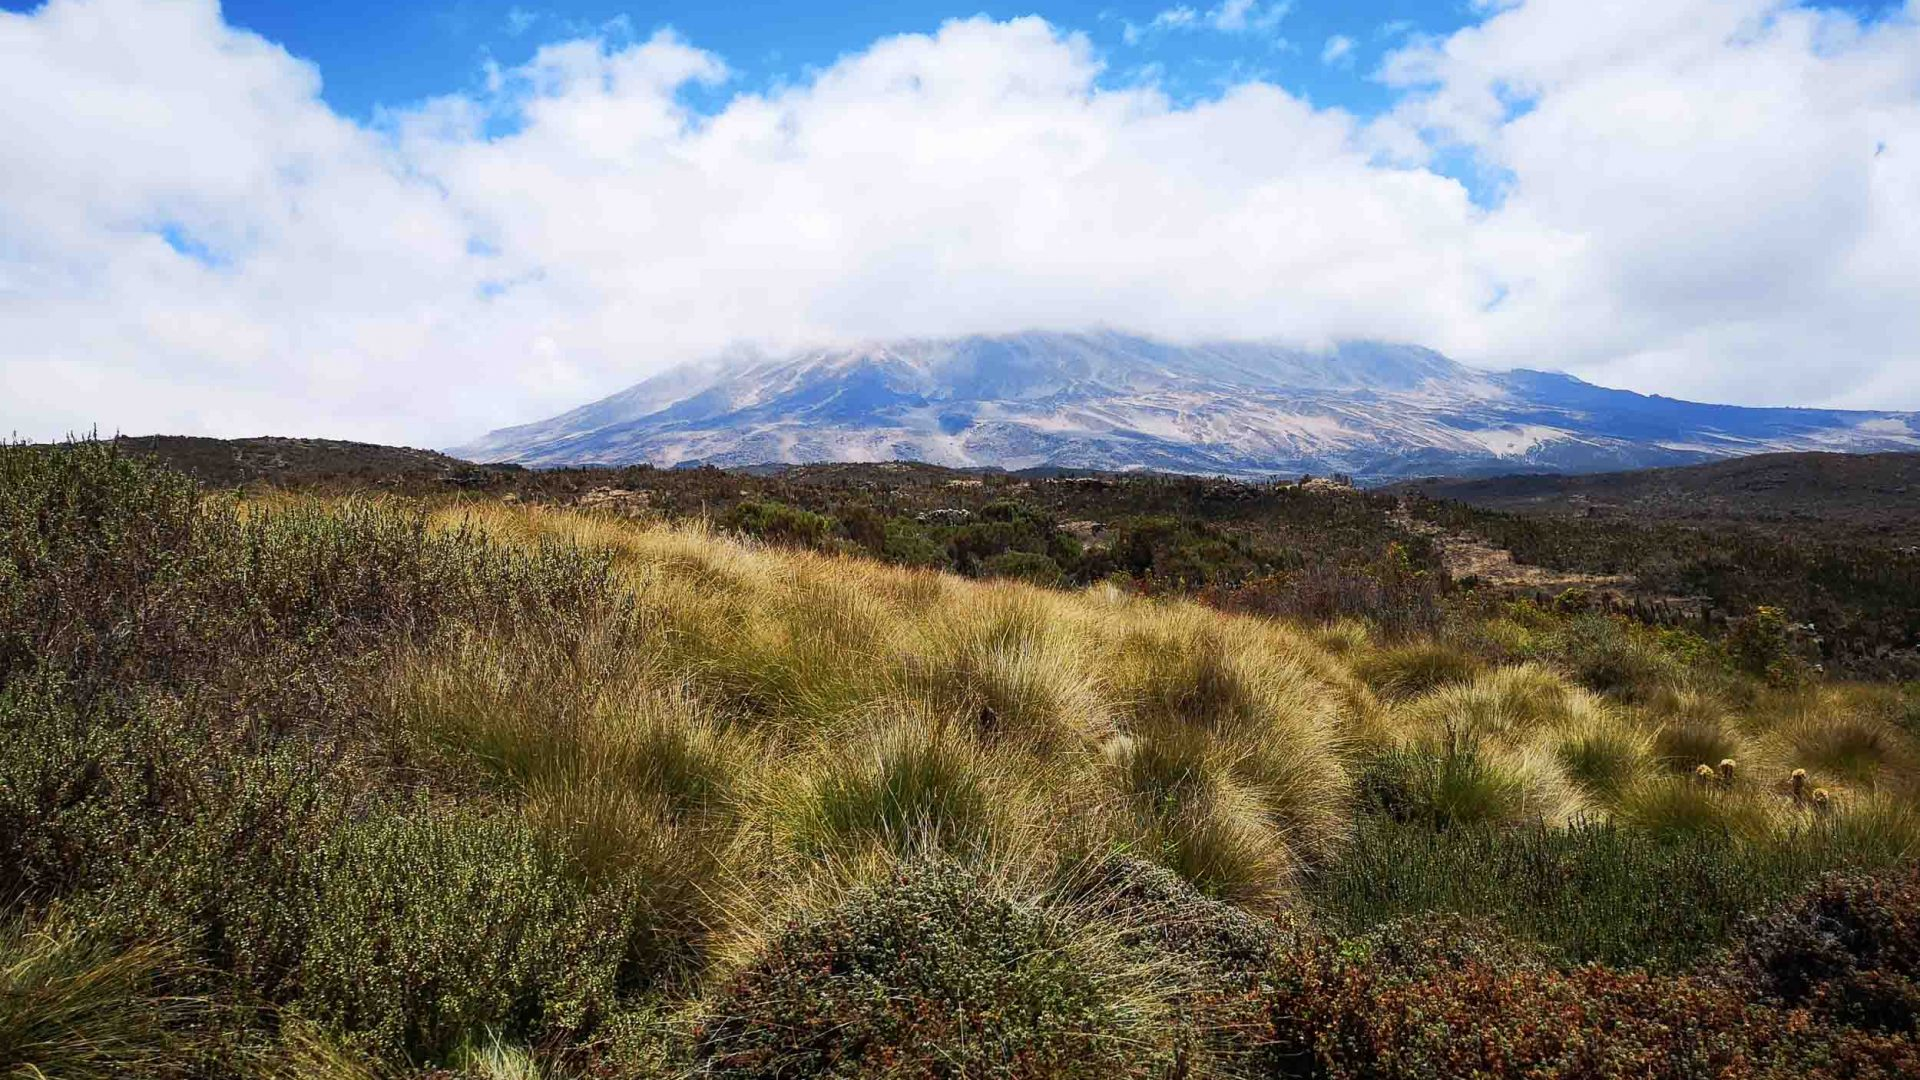 Mount Kilimanjaro in the distance.